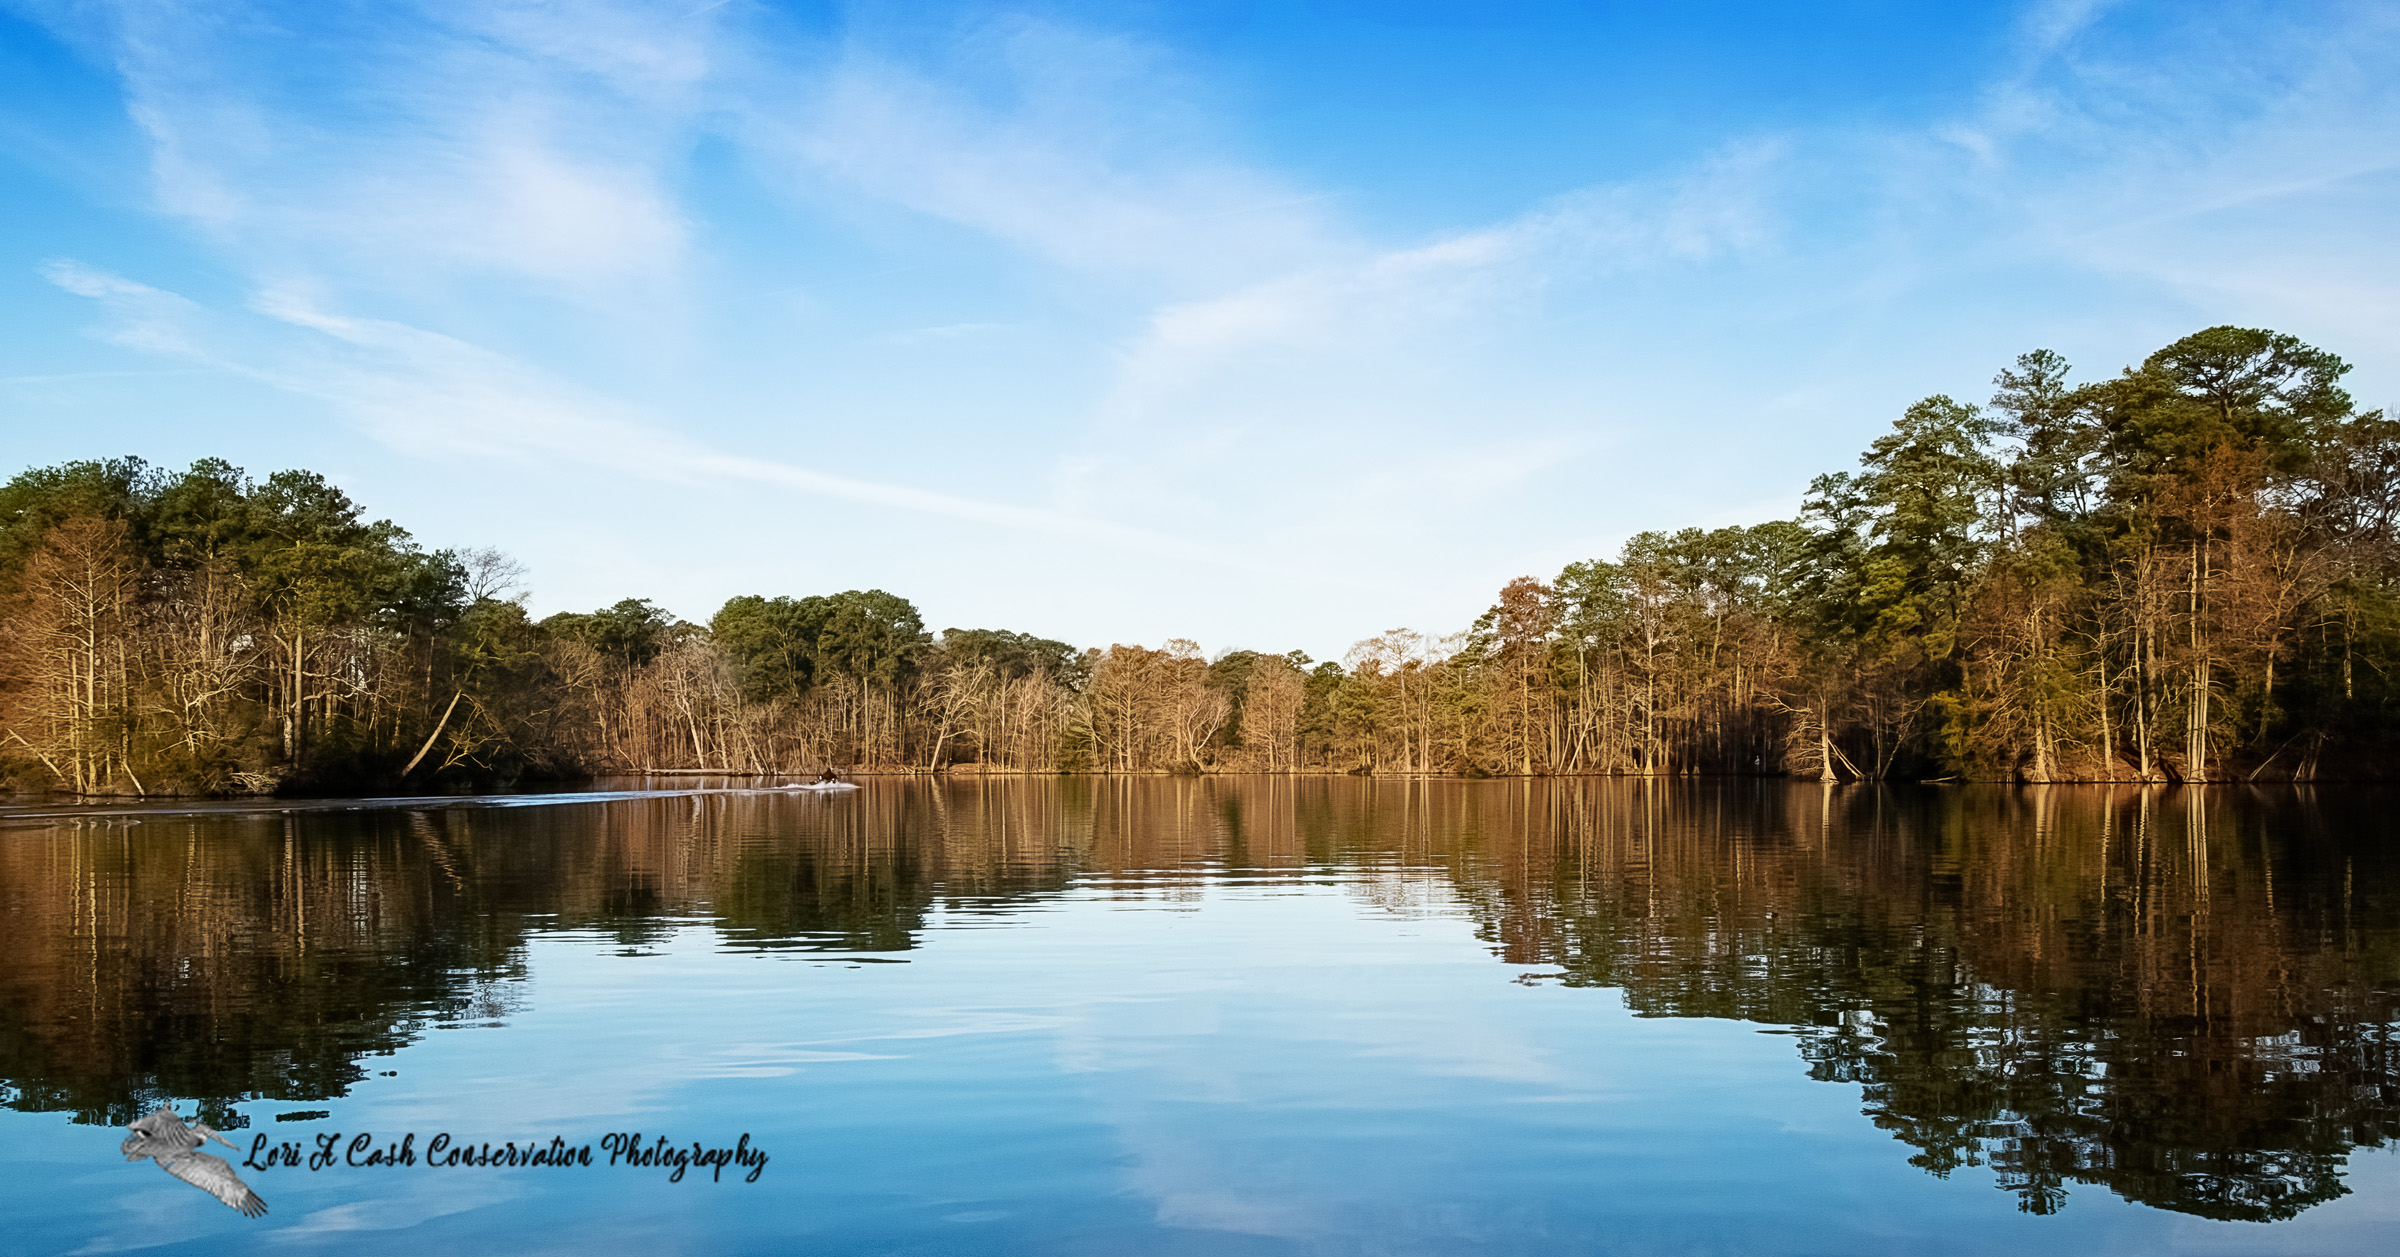 Early morning, clear day with blue skies and tree reflections in the water on Lake Lawson at the Lake Lawson Lake Smith Natural Area in Virginia Beach, Virginia.